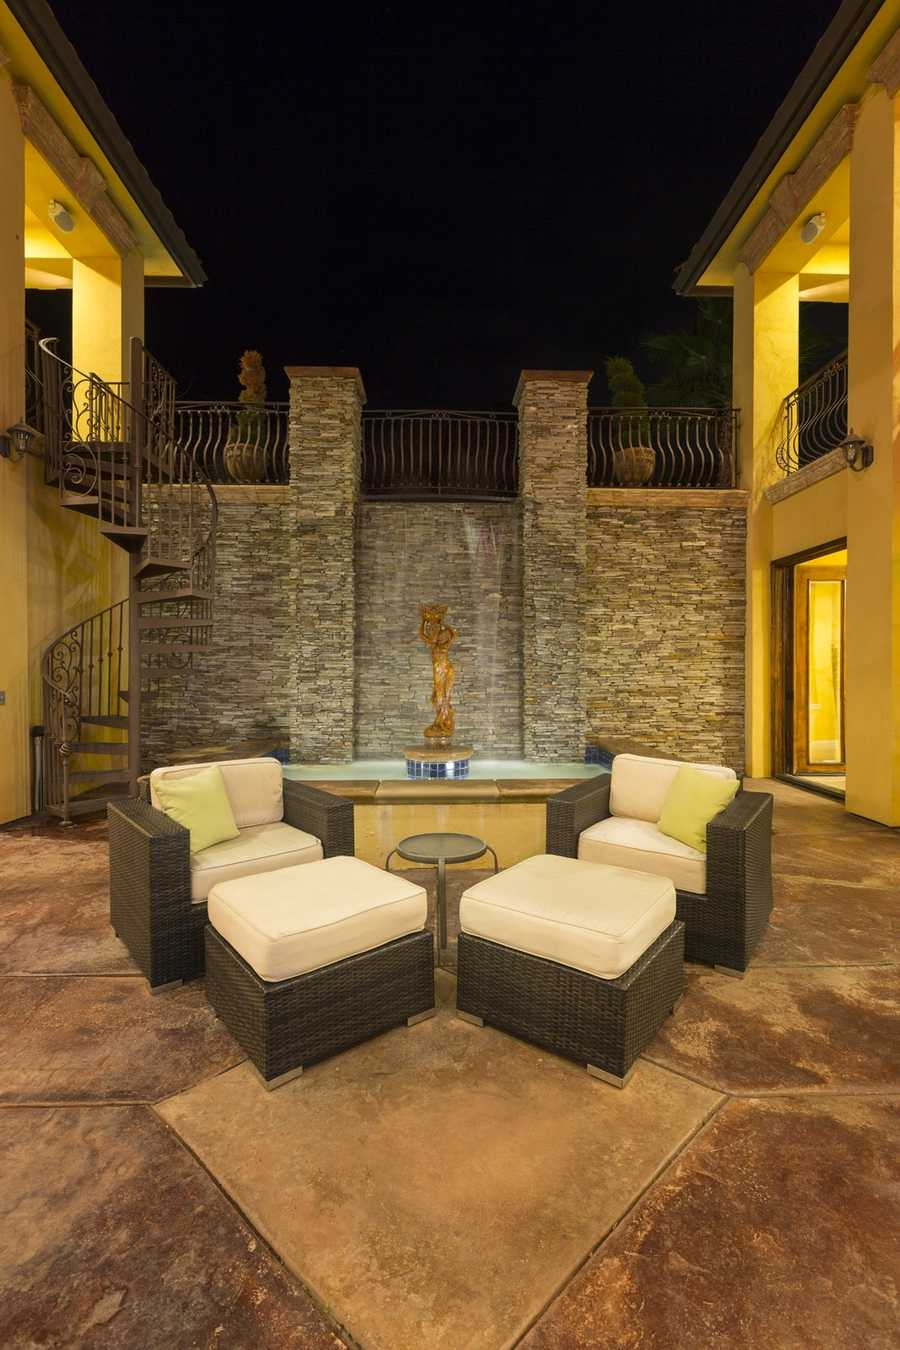 The home builders were inspired by Casa Amarilla in Costa Rica, which has an abundance of exotic waterfalls, orchards of fruit trees and some spectacular views.